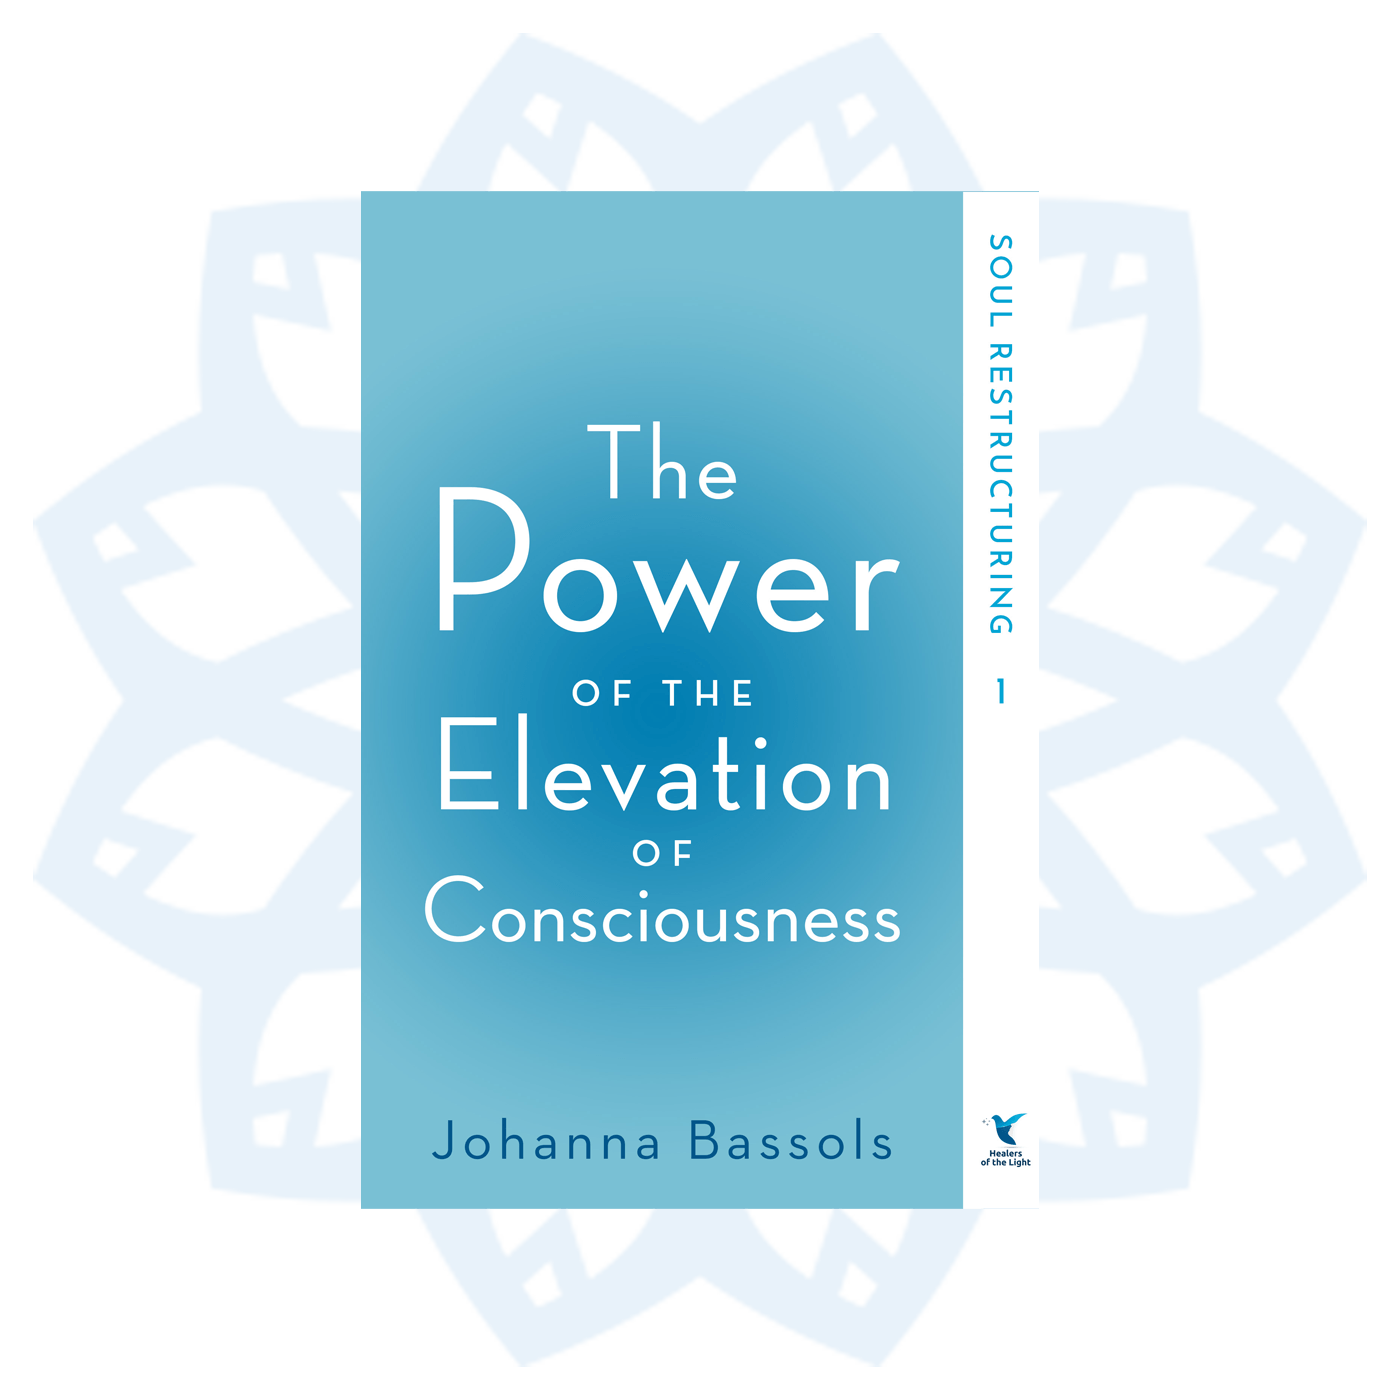 Trilogy E-book: The Power of the Elevation of Consciousness